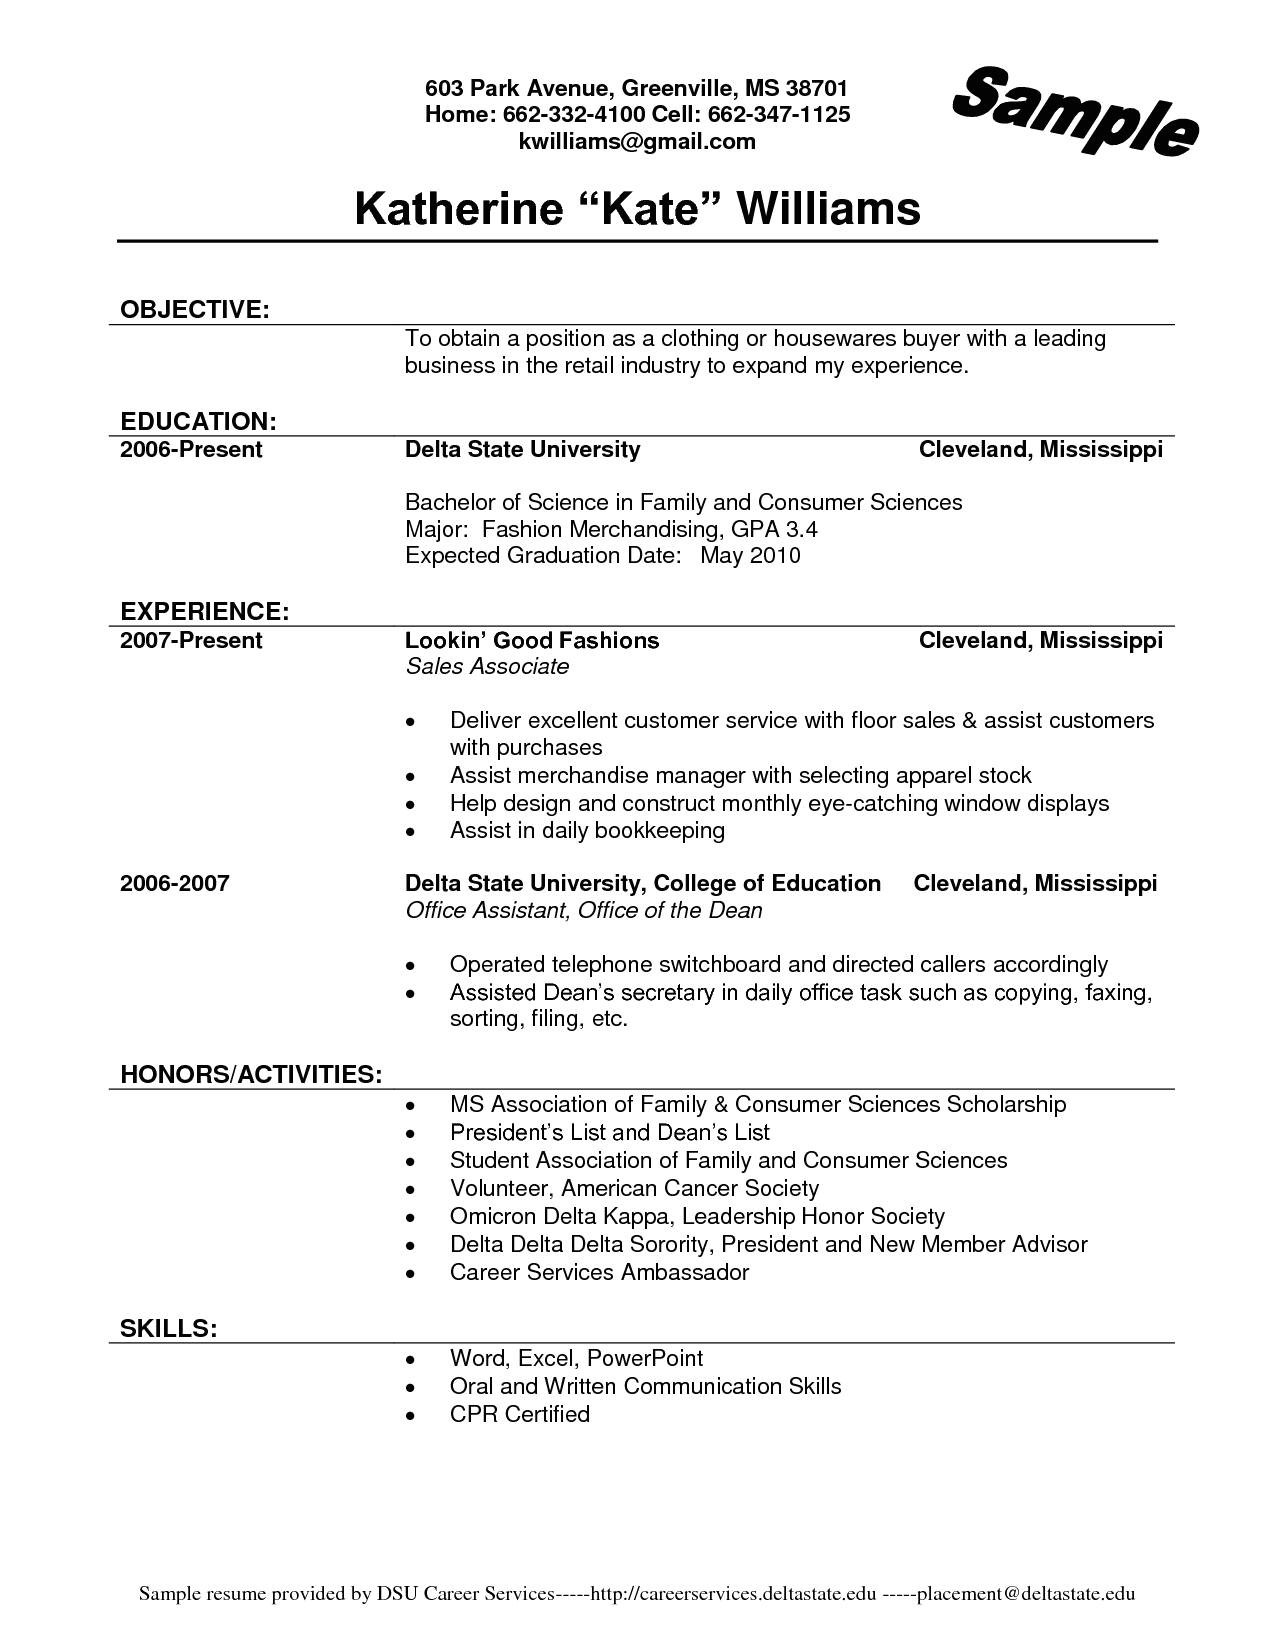 resume samples for tim hortons new resume samples for tim hortons awesome tim hortons resume job